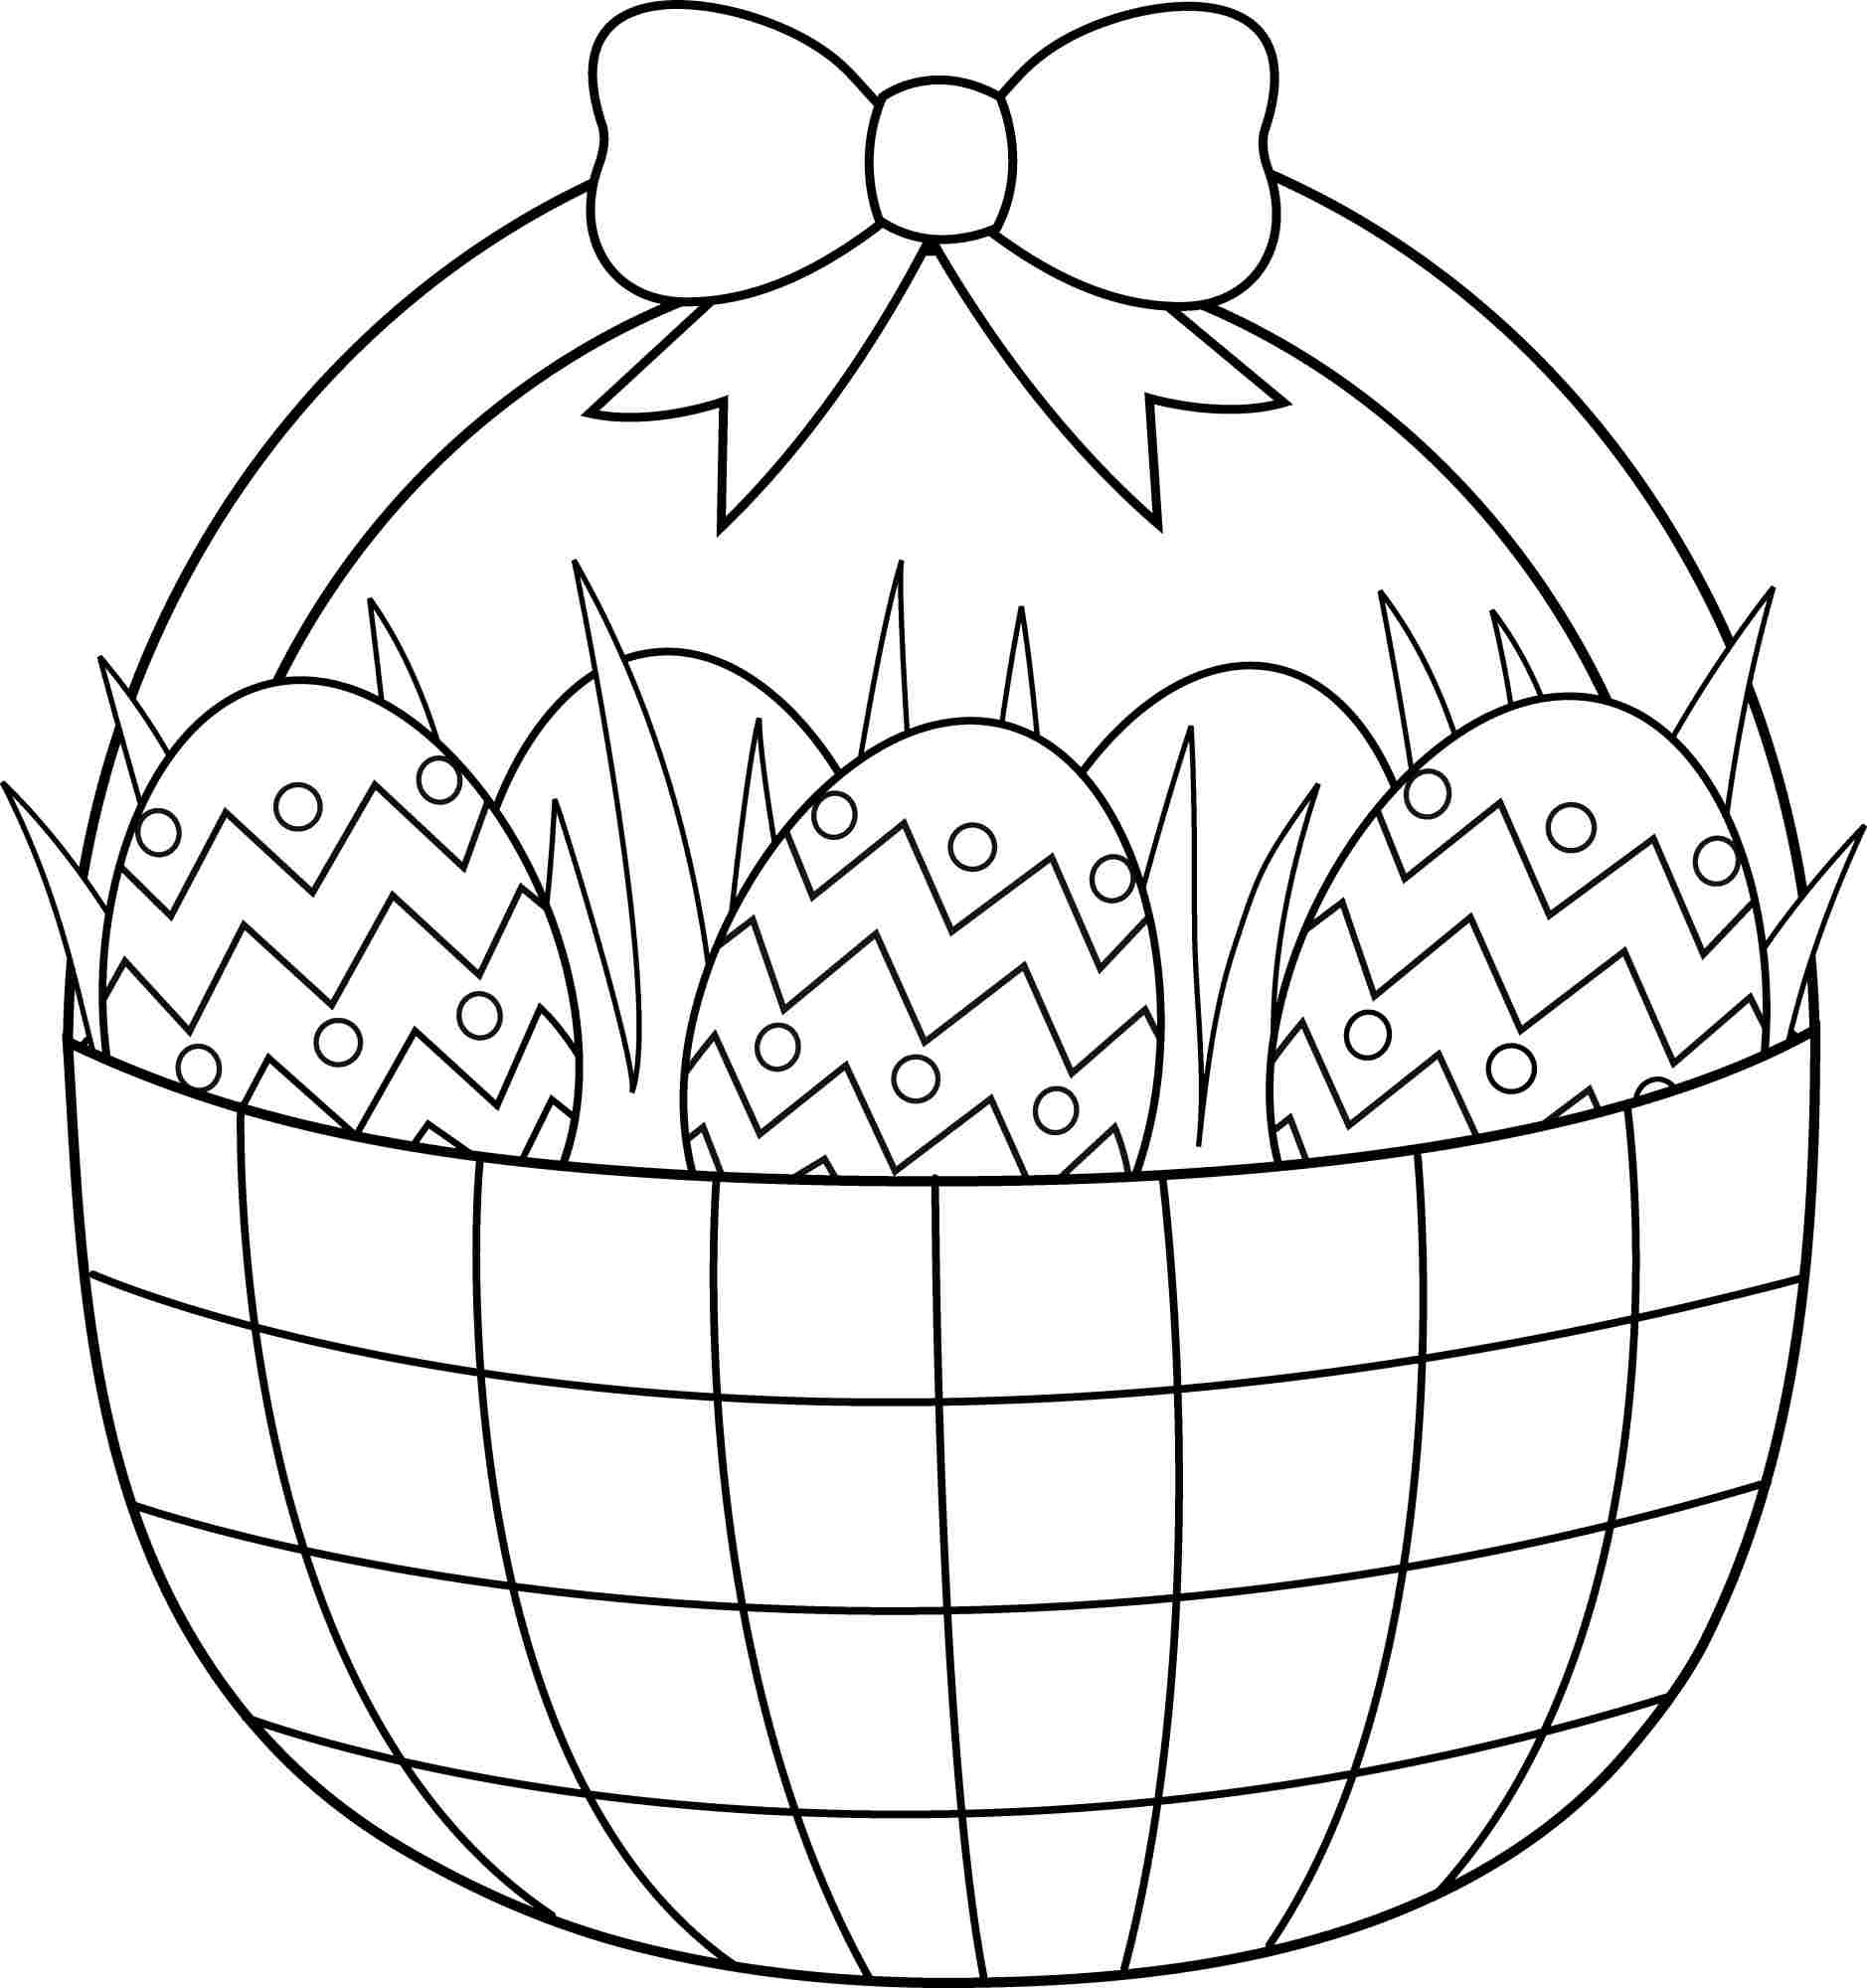 Coloring Pages : Coloring Pages Printable Easter Photo Ideas Drawing - Free Printable Easter Coloring Pictures